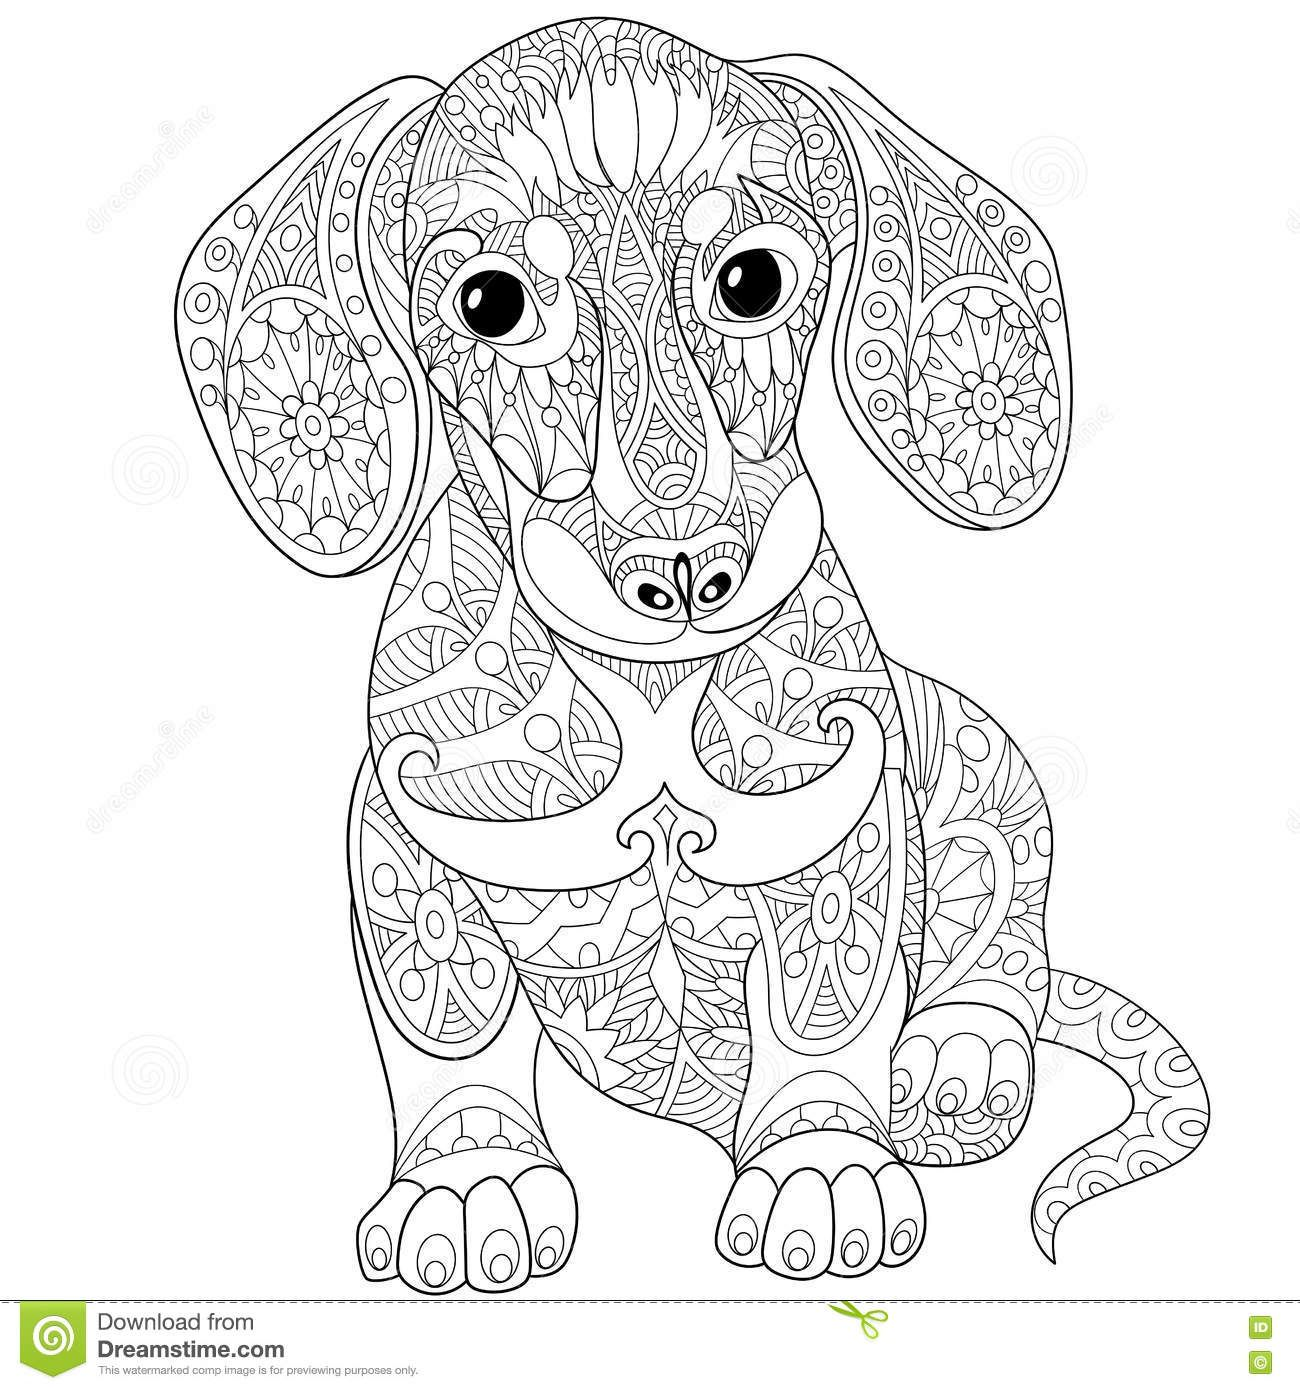 Zentangle Stylized Dachshund Dog Download From Over 60 Million